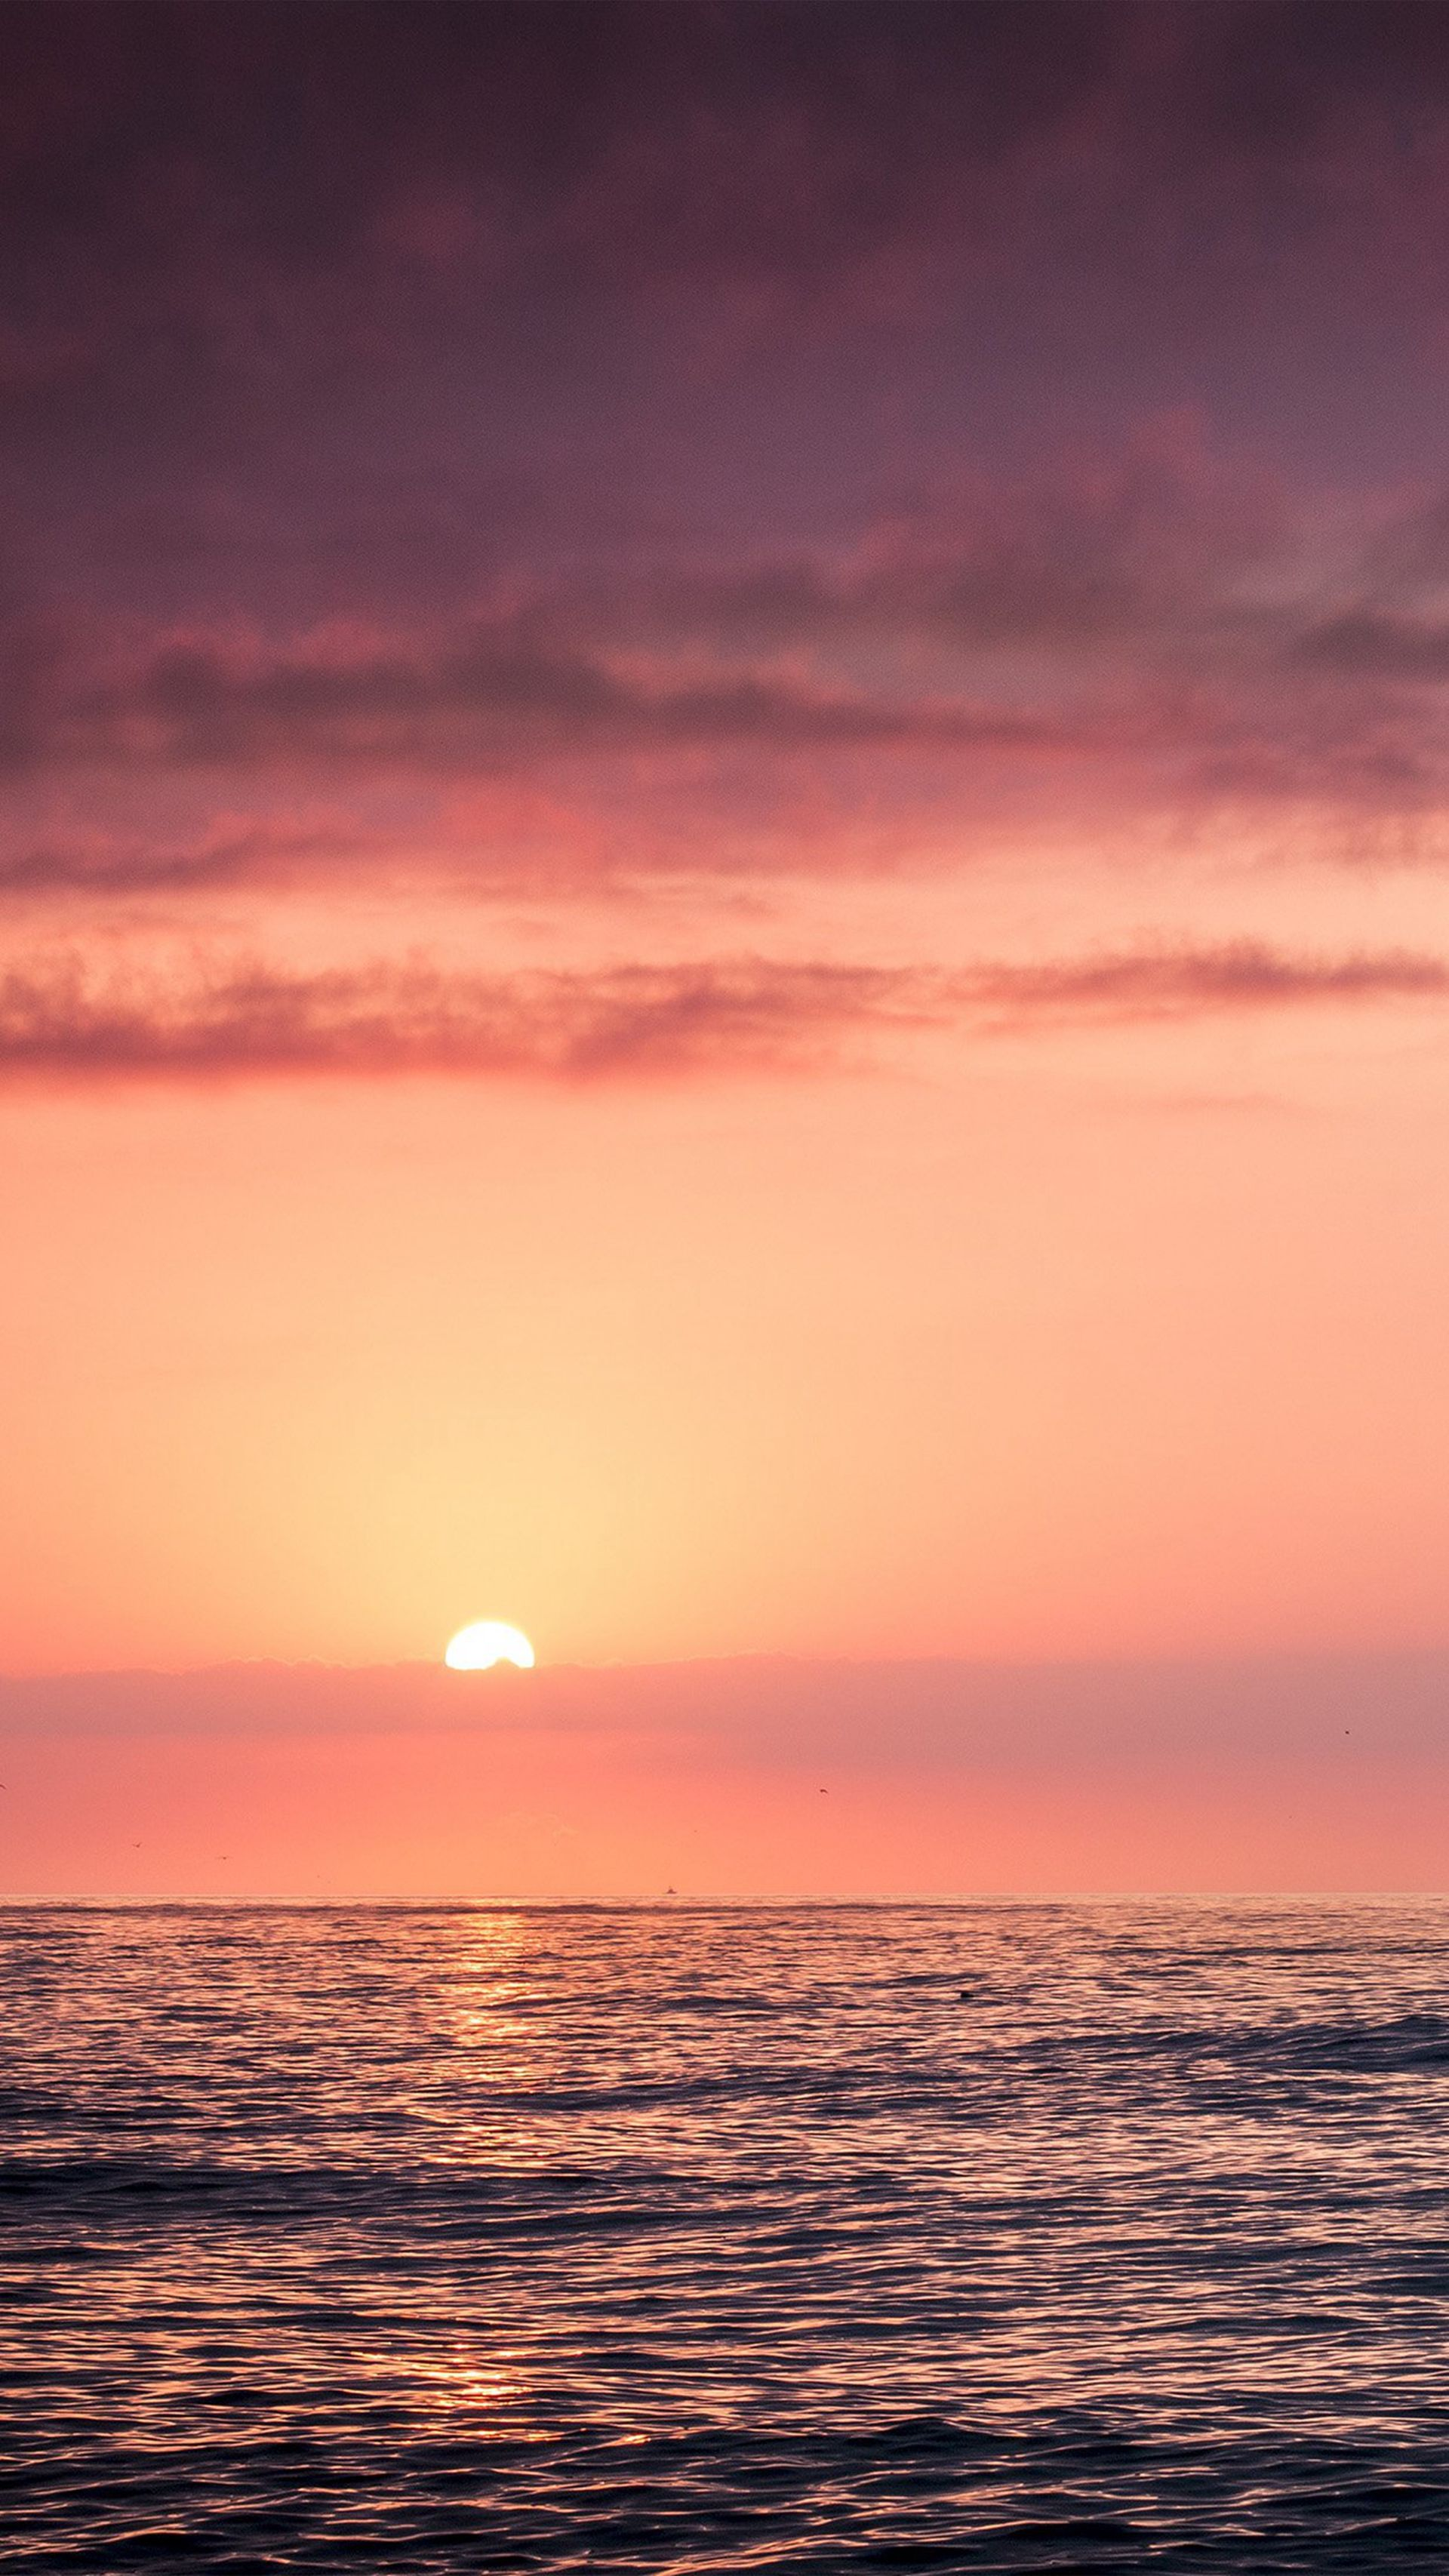 Sunset Sea Beach Sky Red iPhone 6 plus wallpaper (With